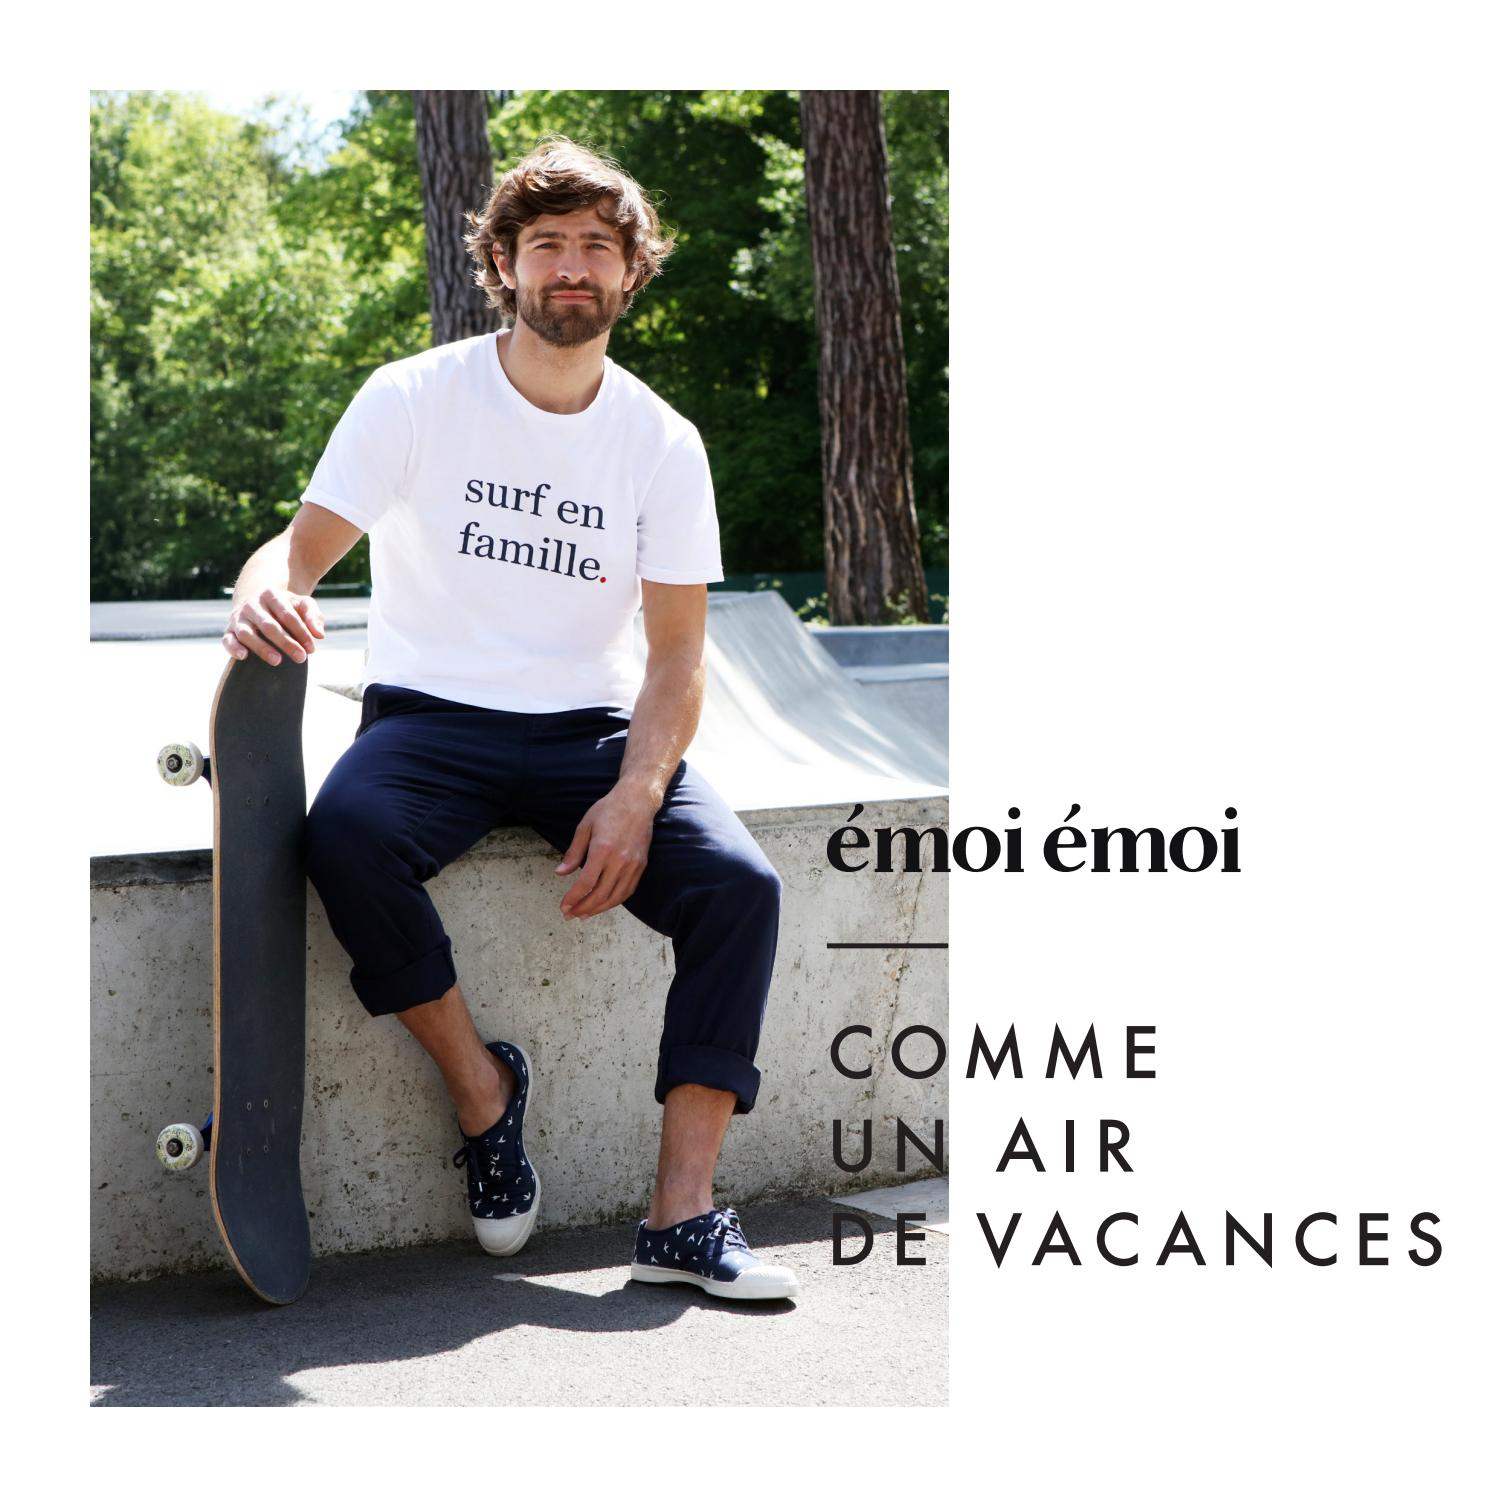 Lookbook Comme Vacances By Air Un De Émoi Issuu 0nPwOk